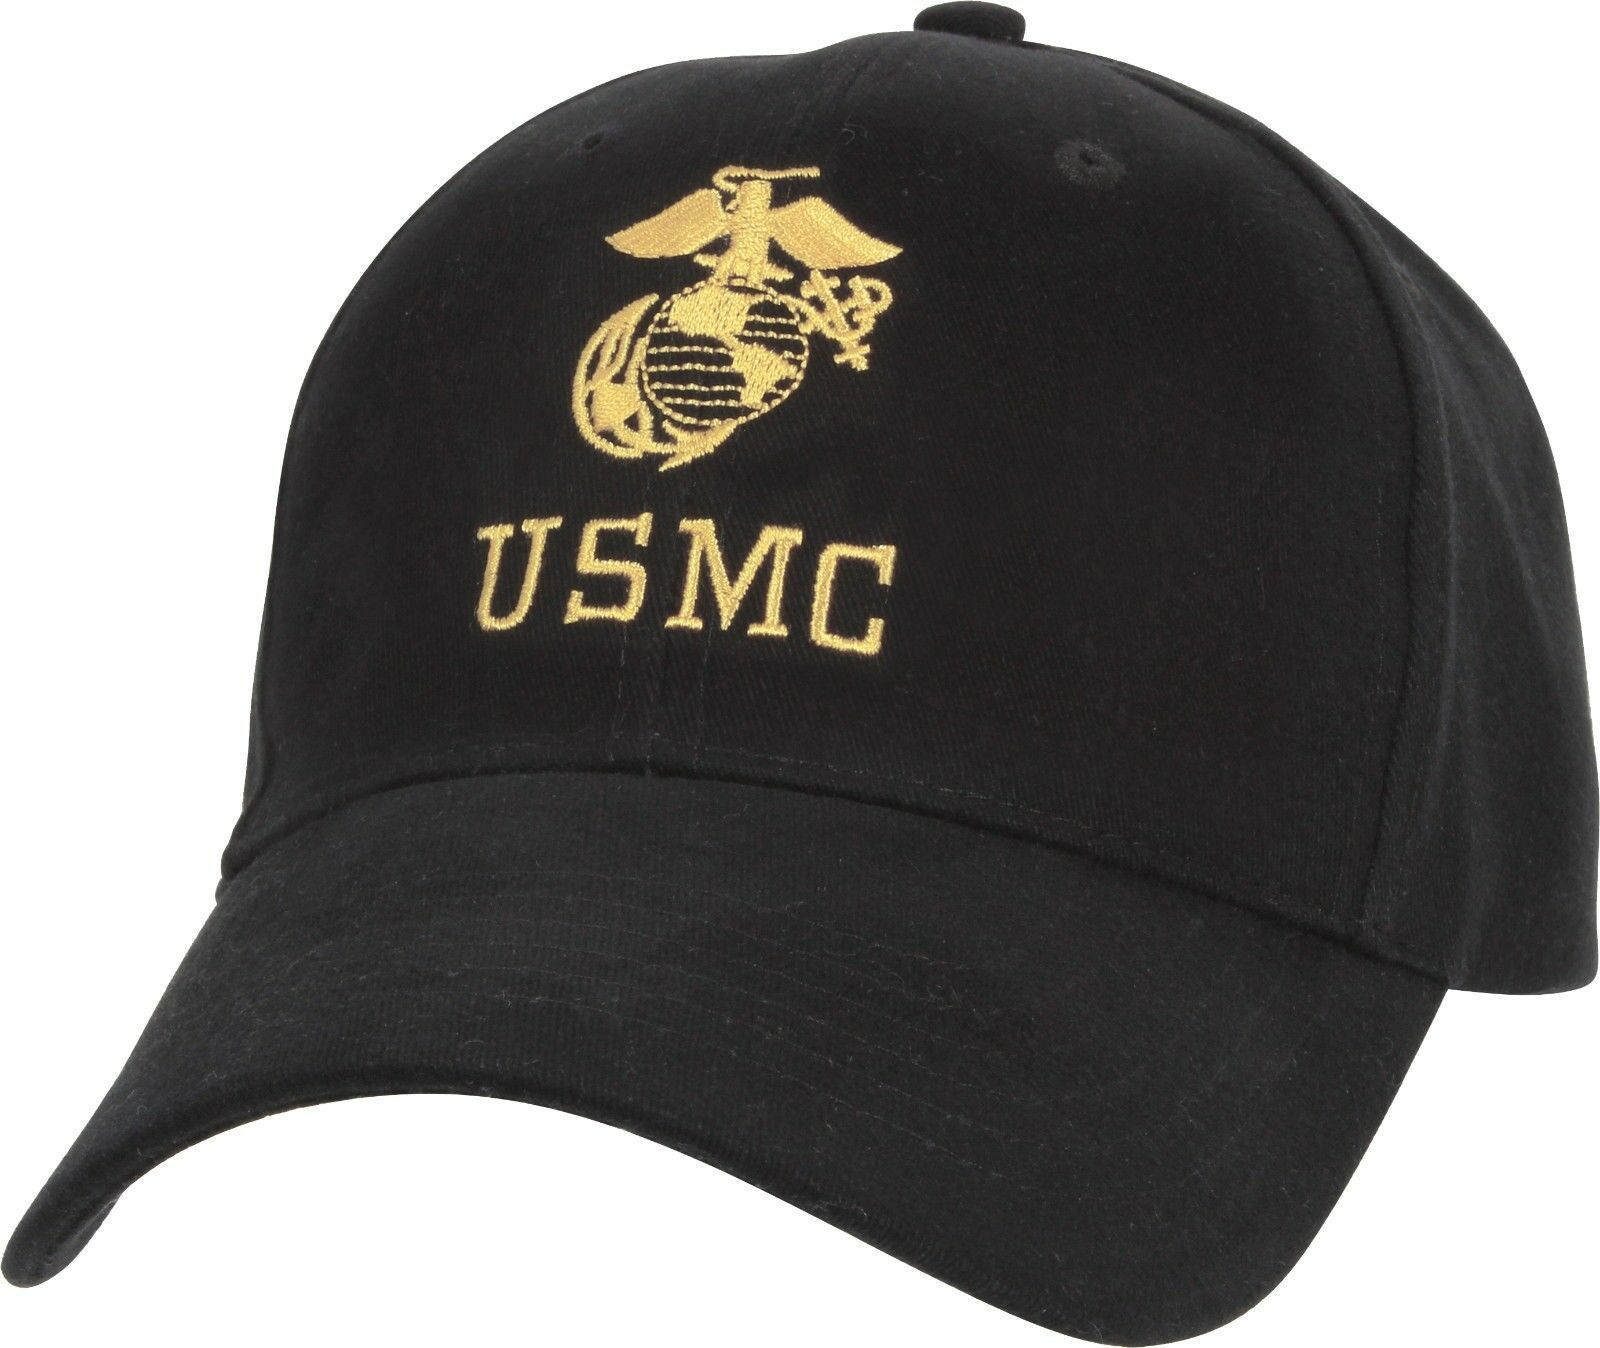 Primary image for Black USMC Globe & Anchor Logo Adjustable Cap Baseball Hat